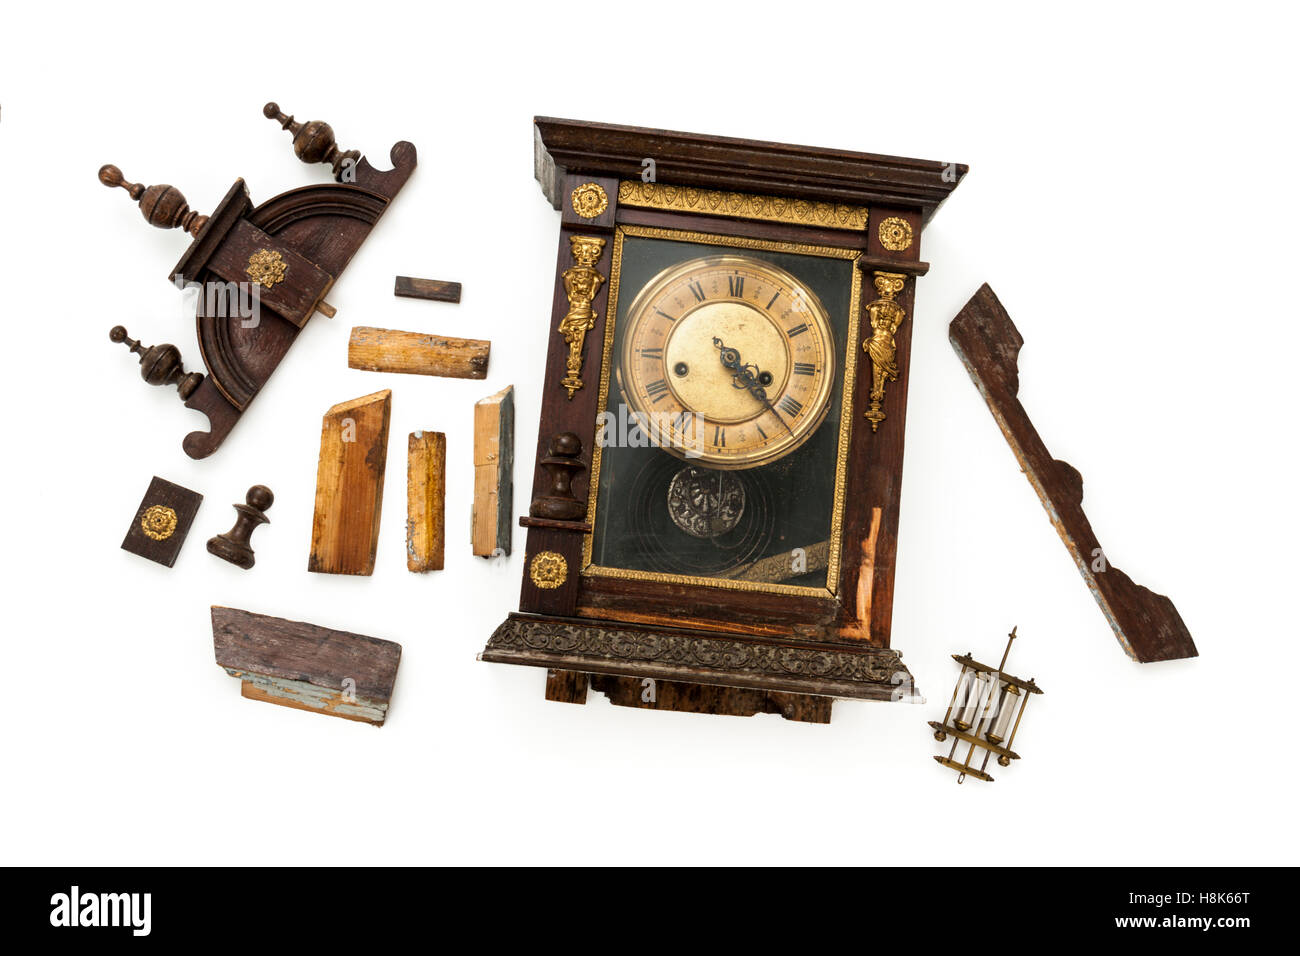 Broken antique clock ready for restoration by a horologist - Stock Image